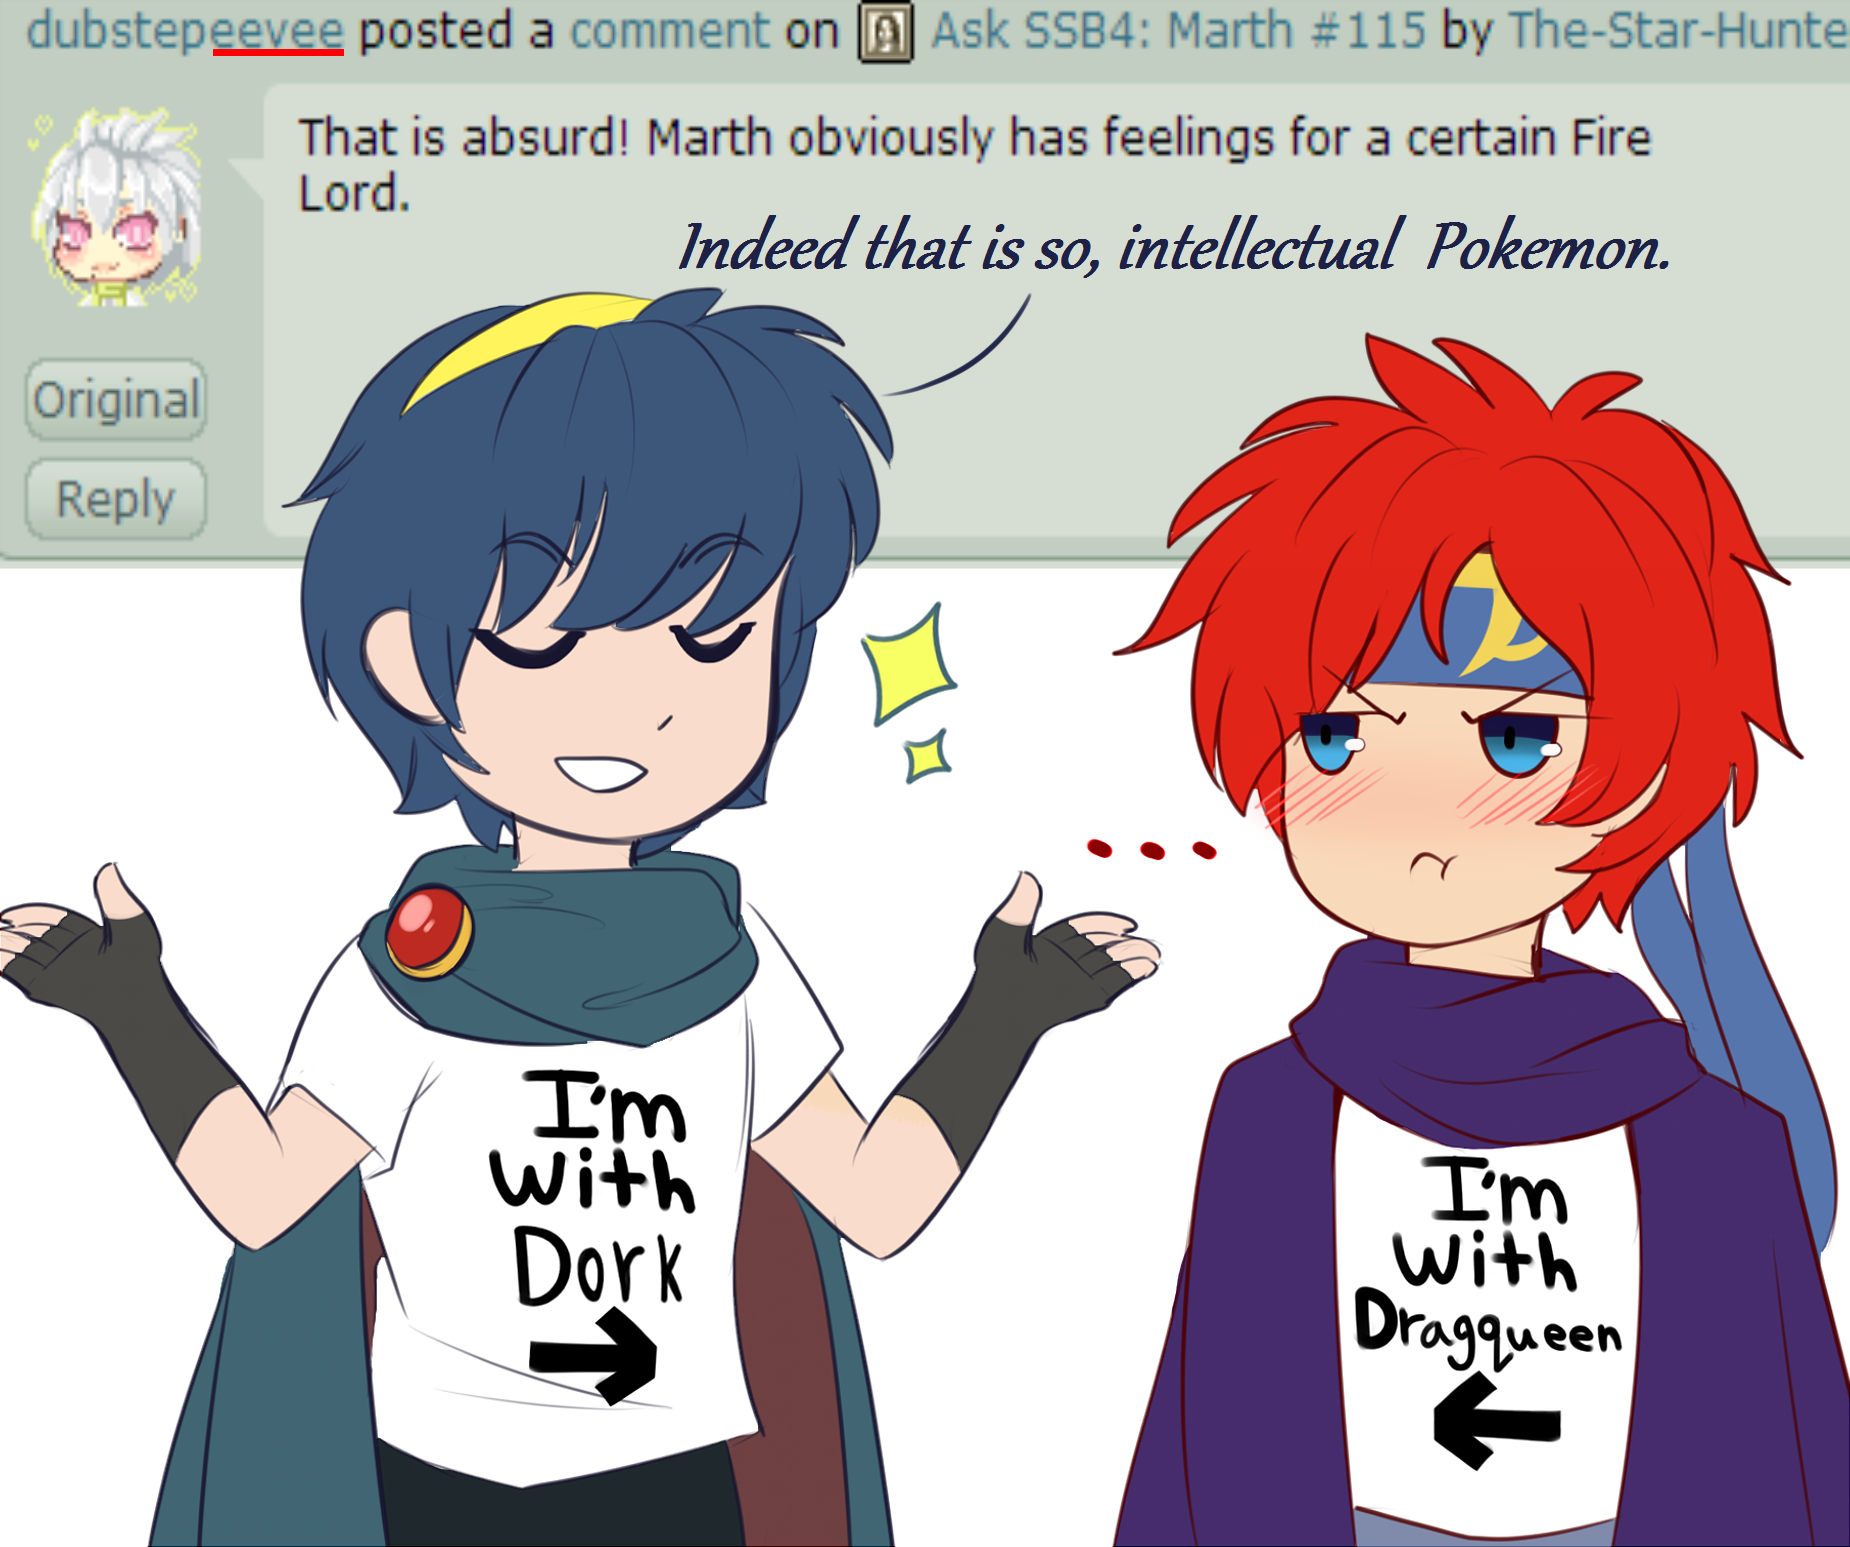 Gods, Male Avatar and Lucina Spoilers* - Fire Emblem